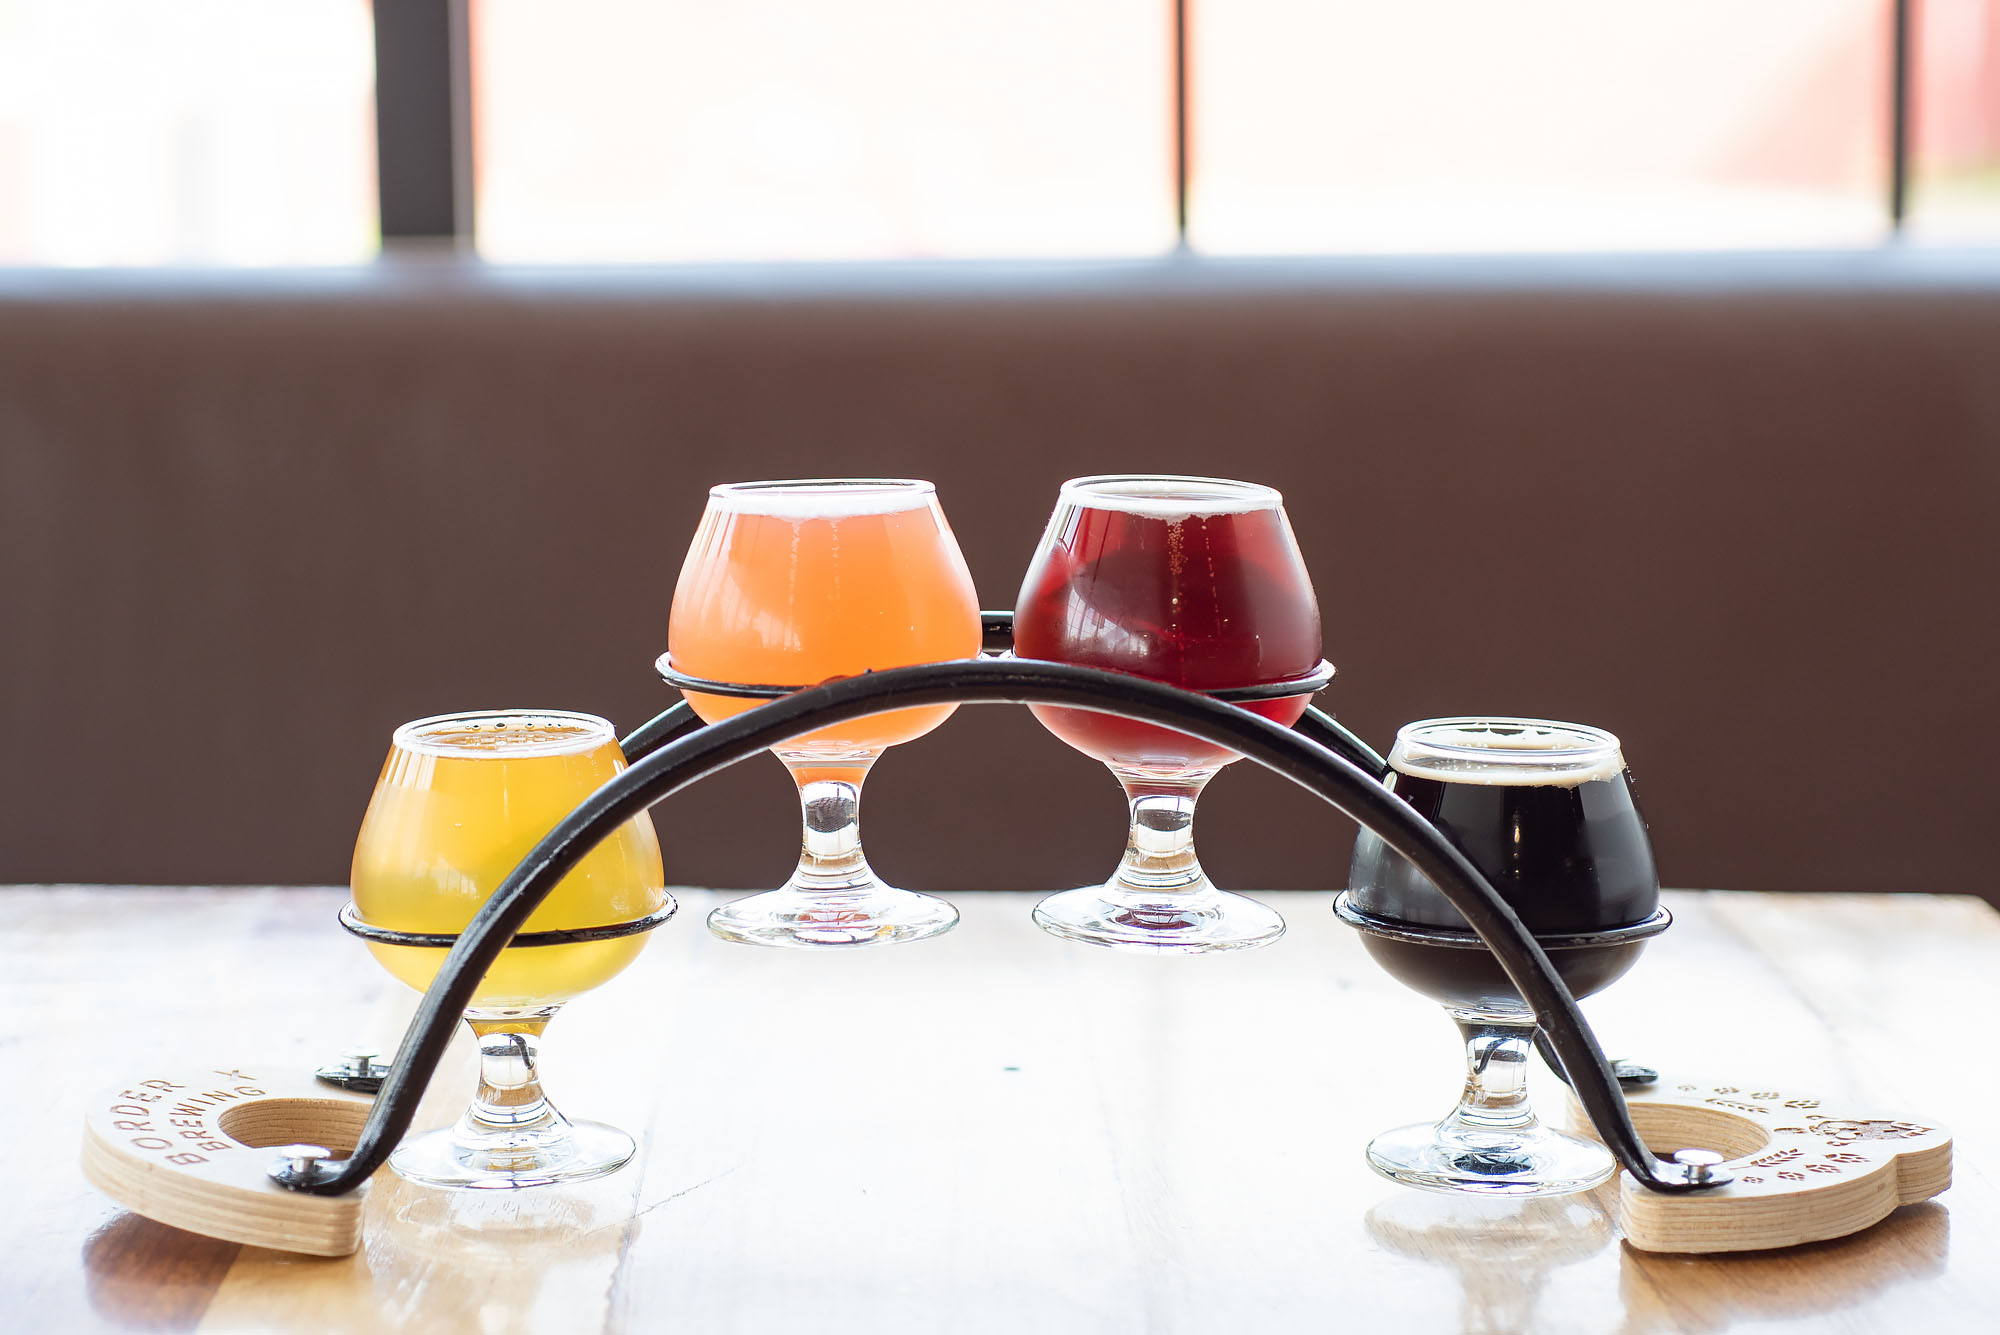 A flight of beers at Border X Brewing in Bell, California